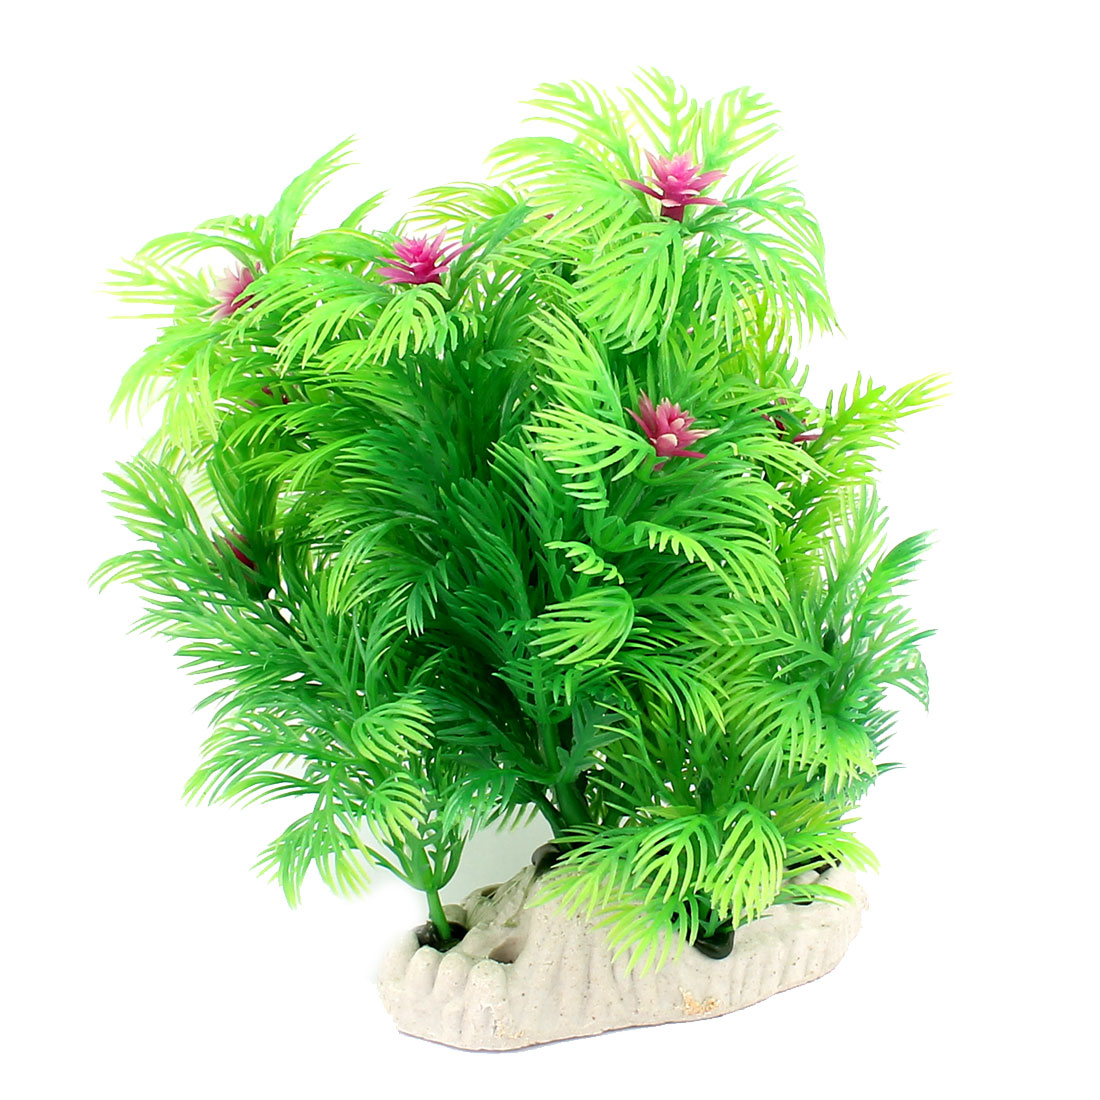 Plastic Grass Aquarium Artificial Underwater Landscape Plant 14cm High